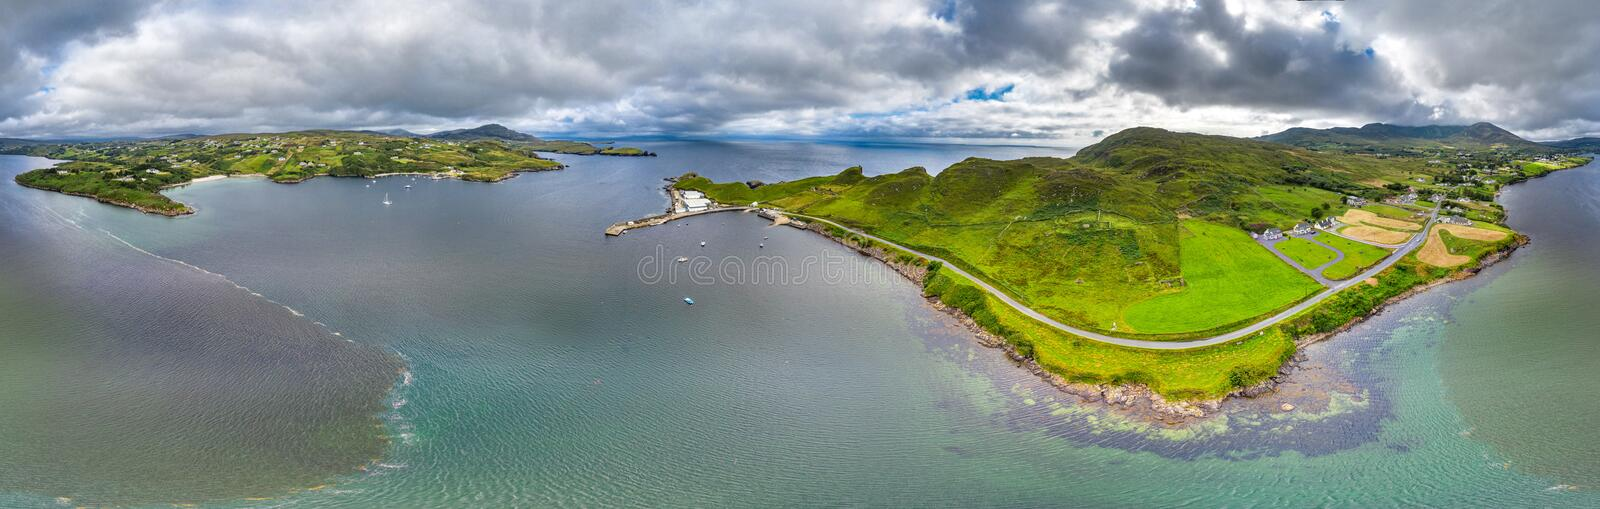 Aerial view of Teelin Bay in County Donegal on the Wild Atlantic Way in Ireland royalty free stock images